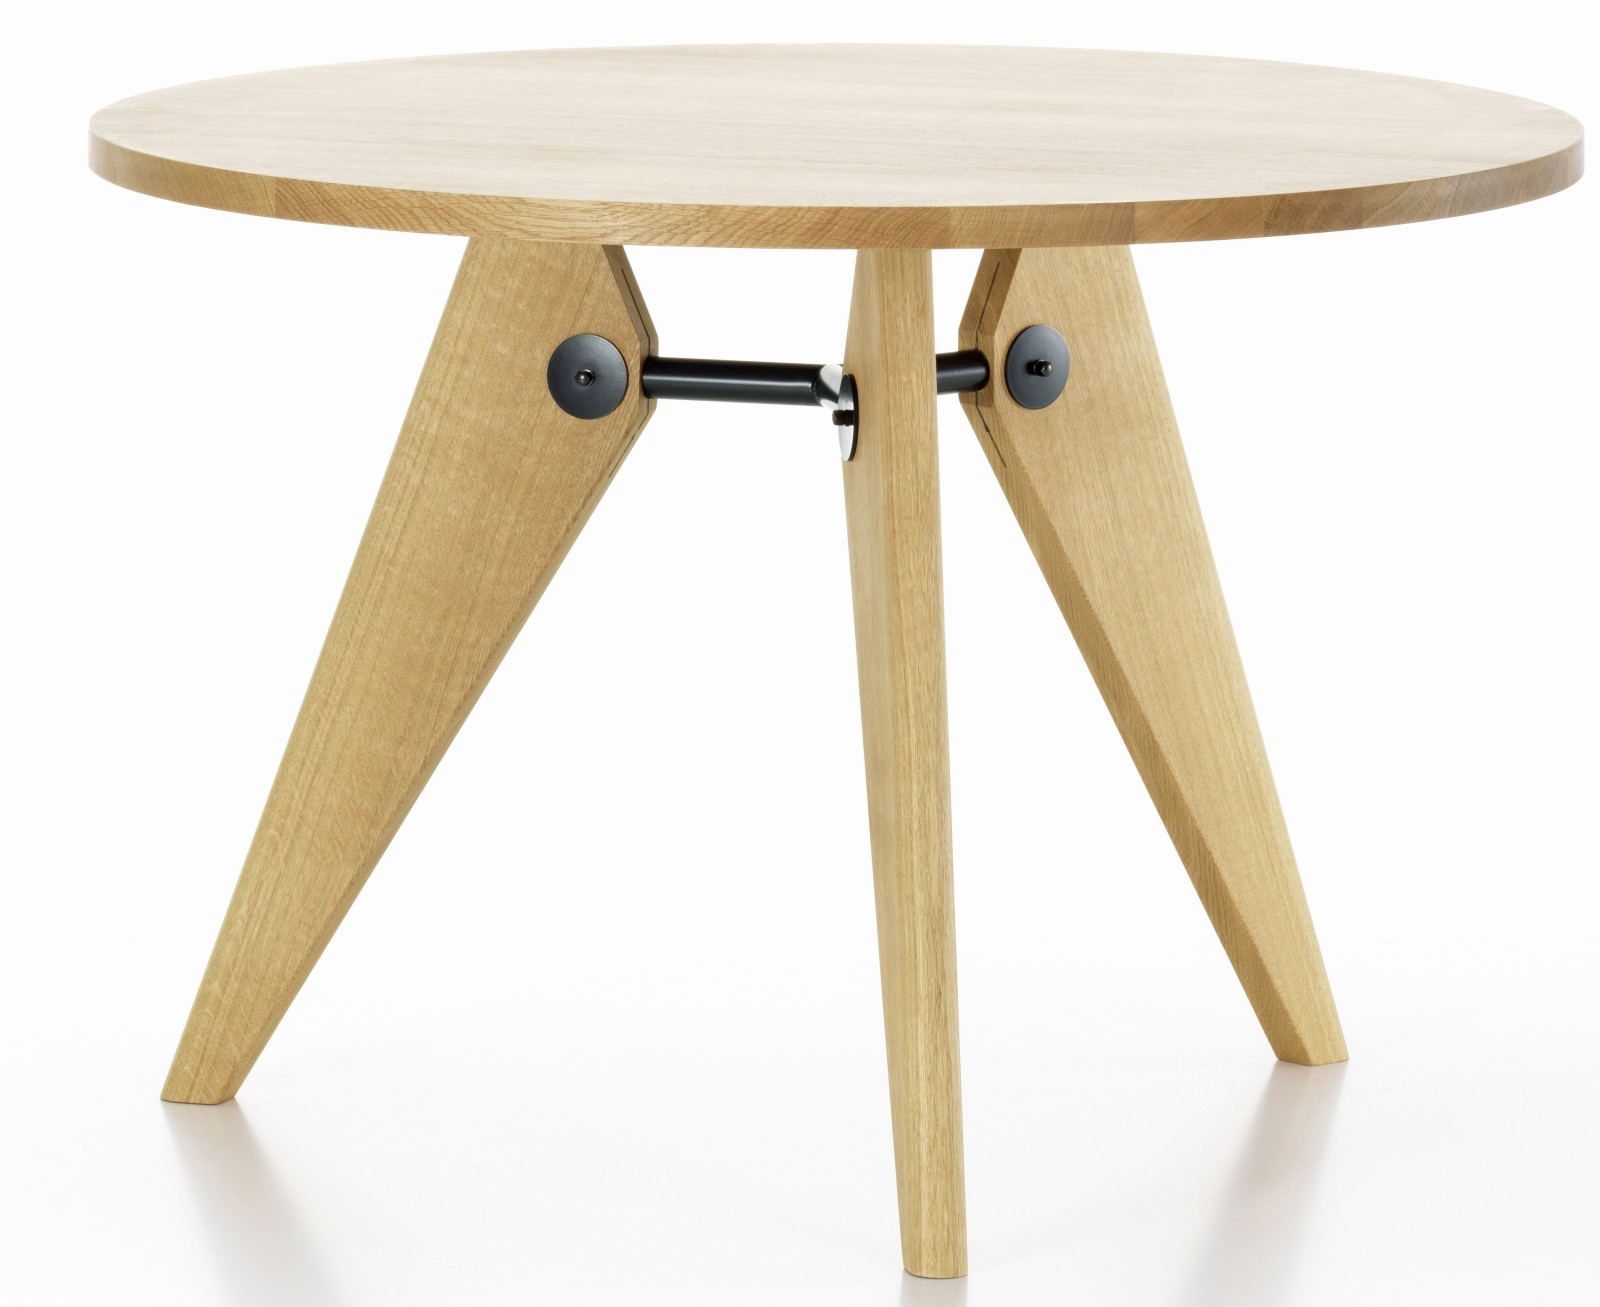 Gueridon Dining Table 70 natural oiled solid oak, 1050